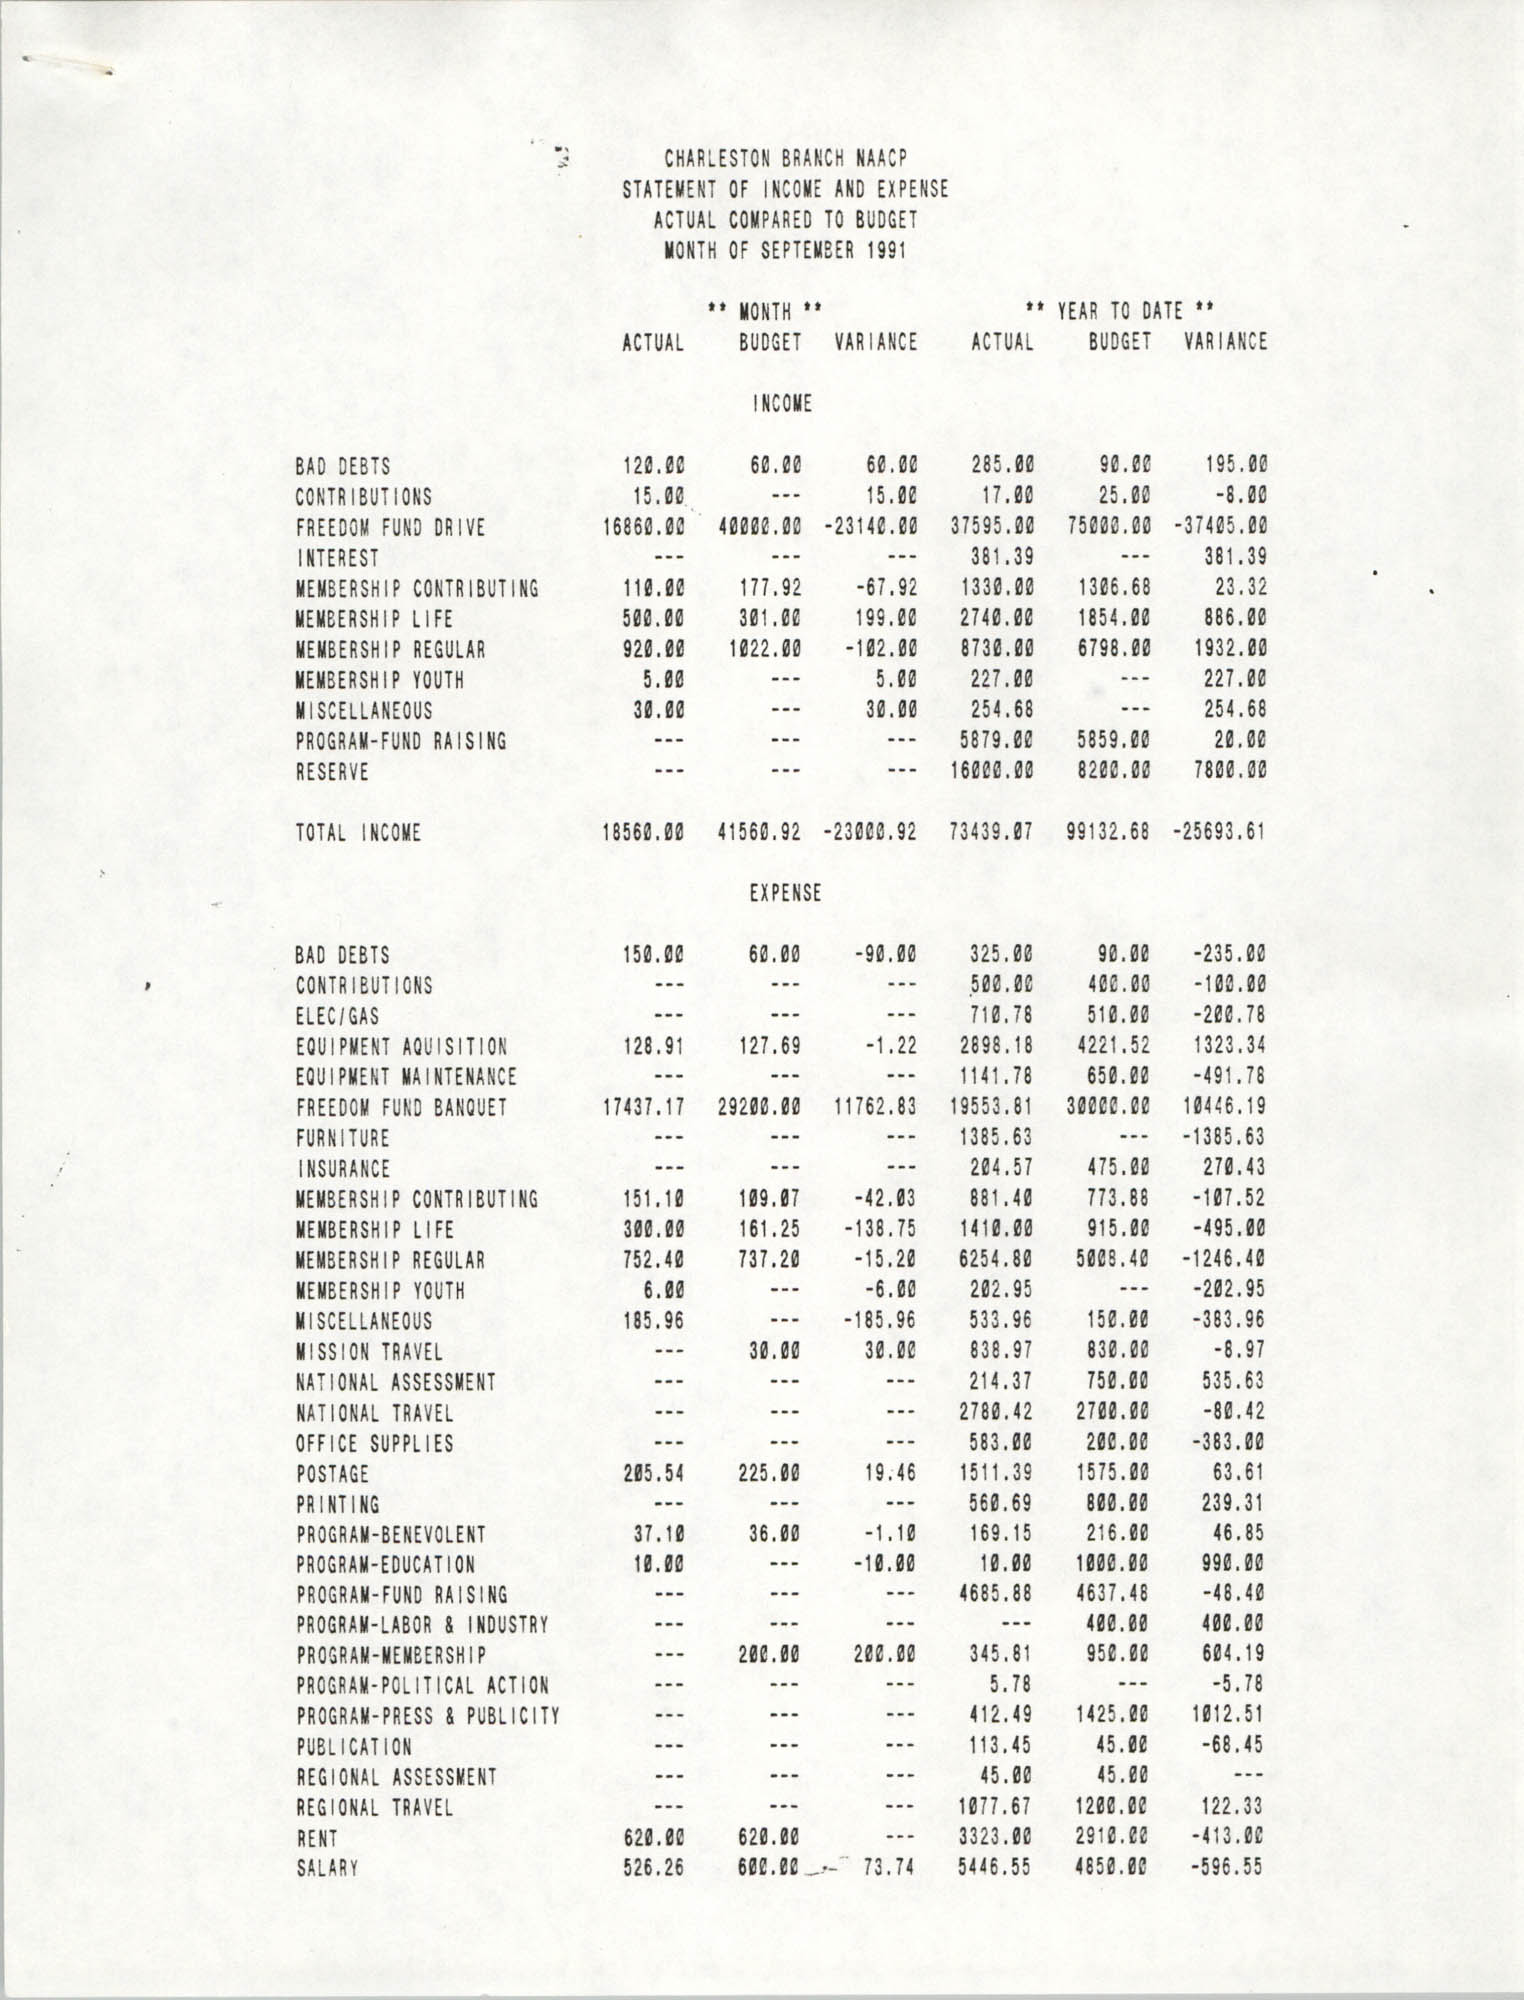 Charleston Branch of the NAACP Statement of Income and Expense, September 1991, Page 1